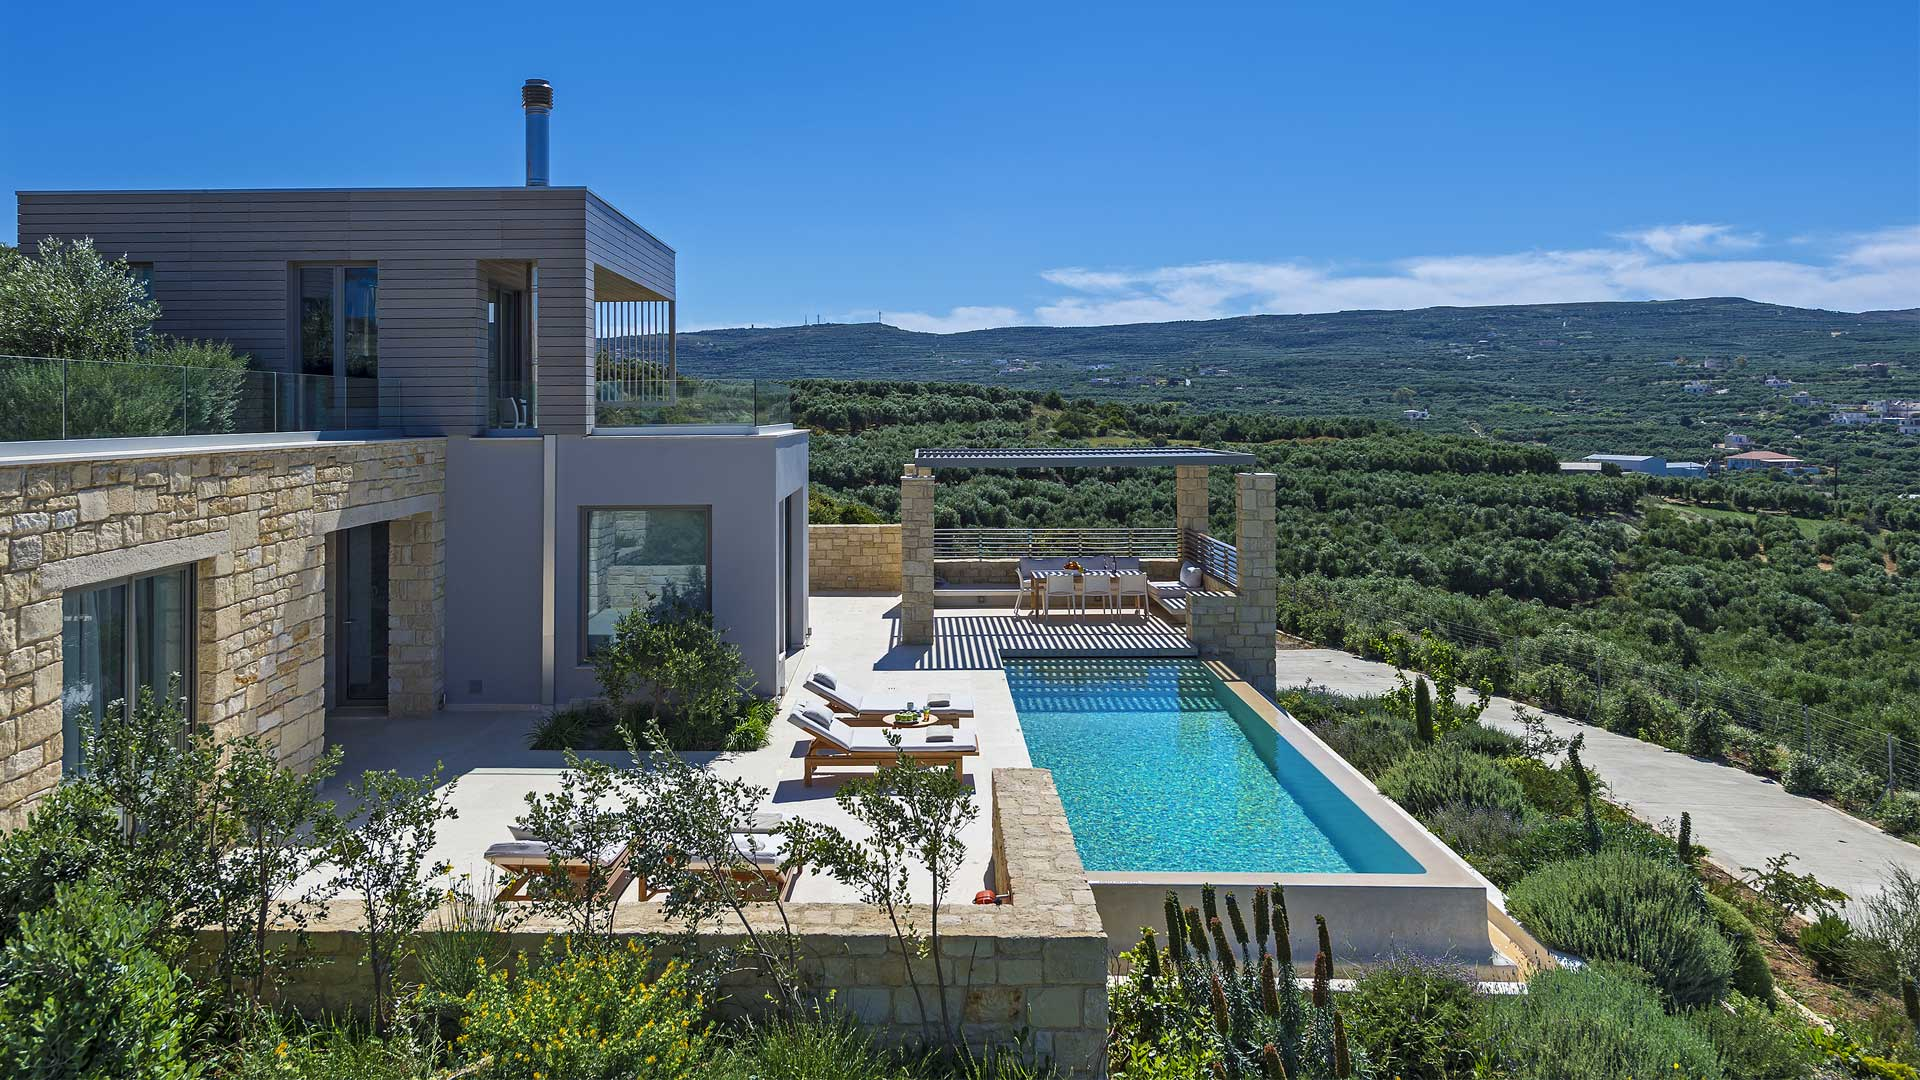 Luxury Villas For Sale In Dubrovnik